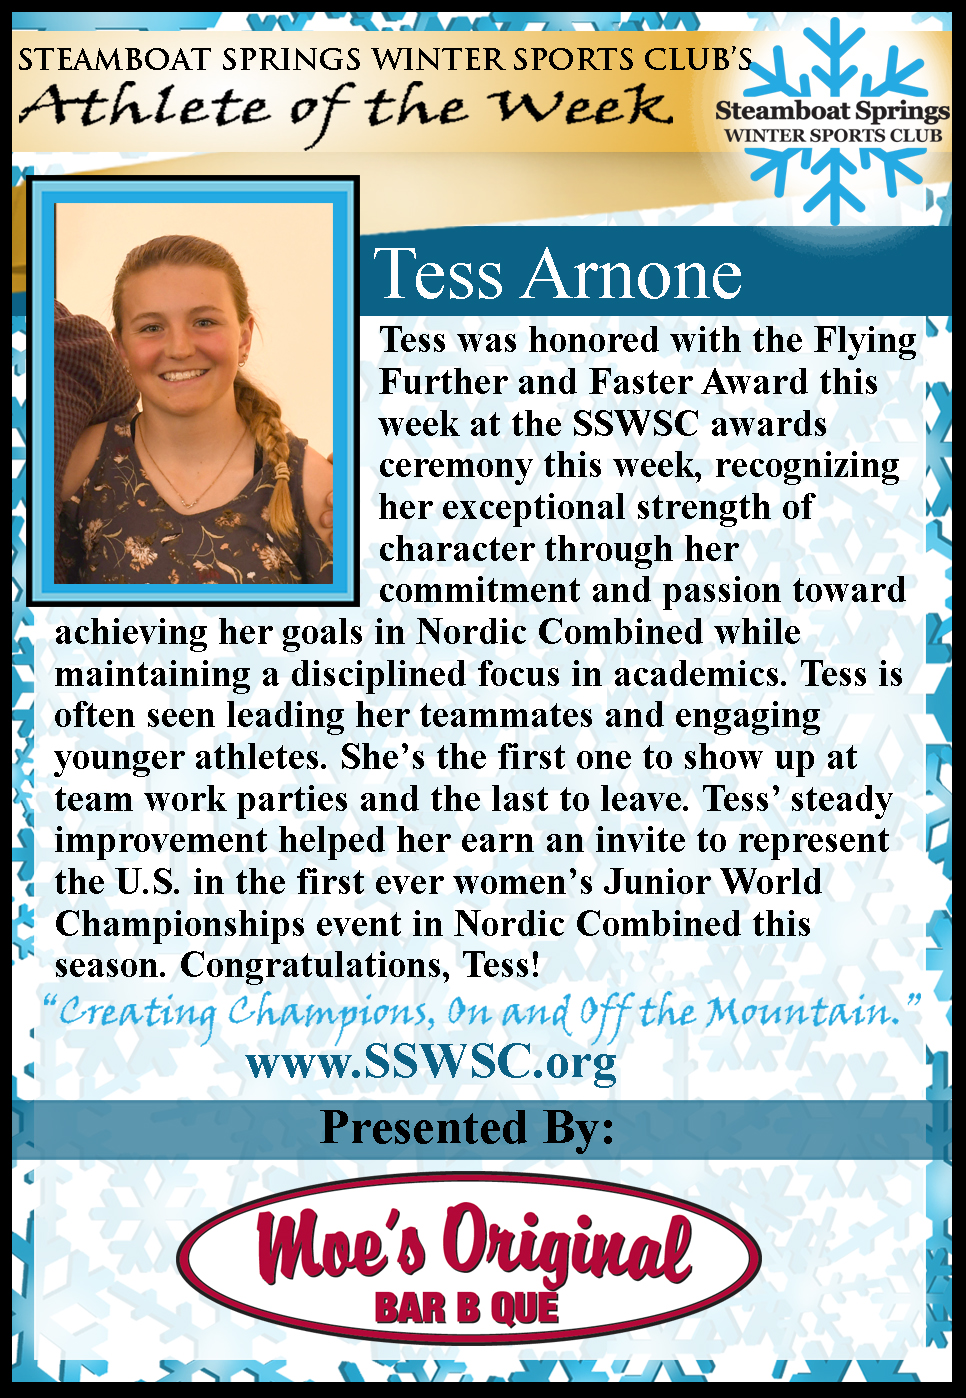 Athlete of the Week, Tess Arnone